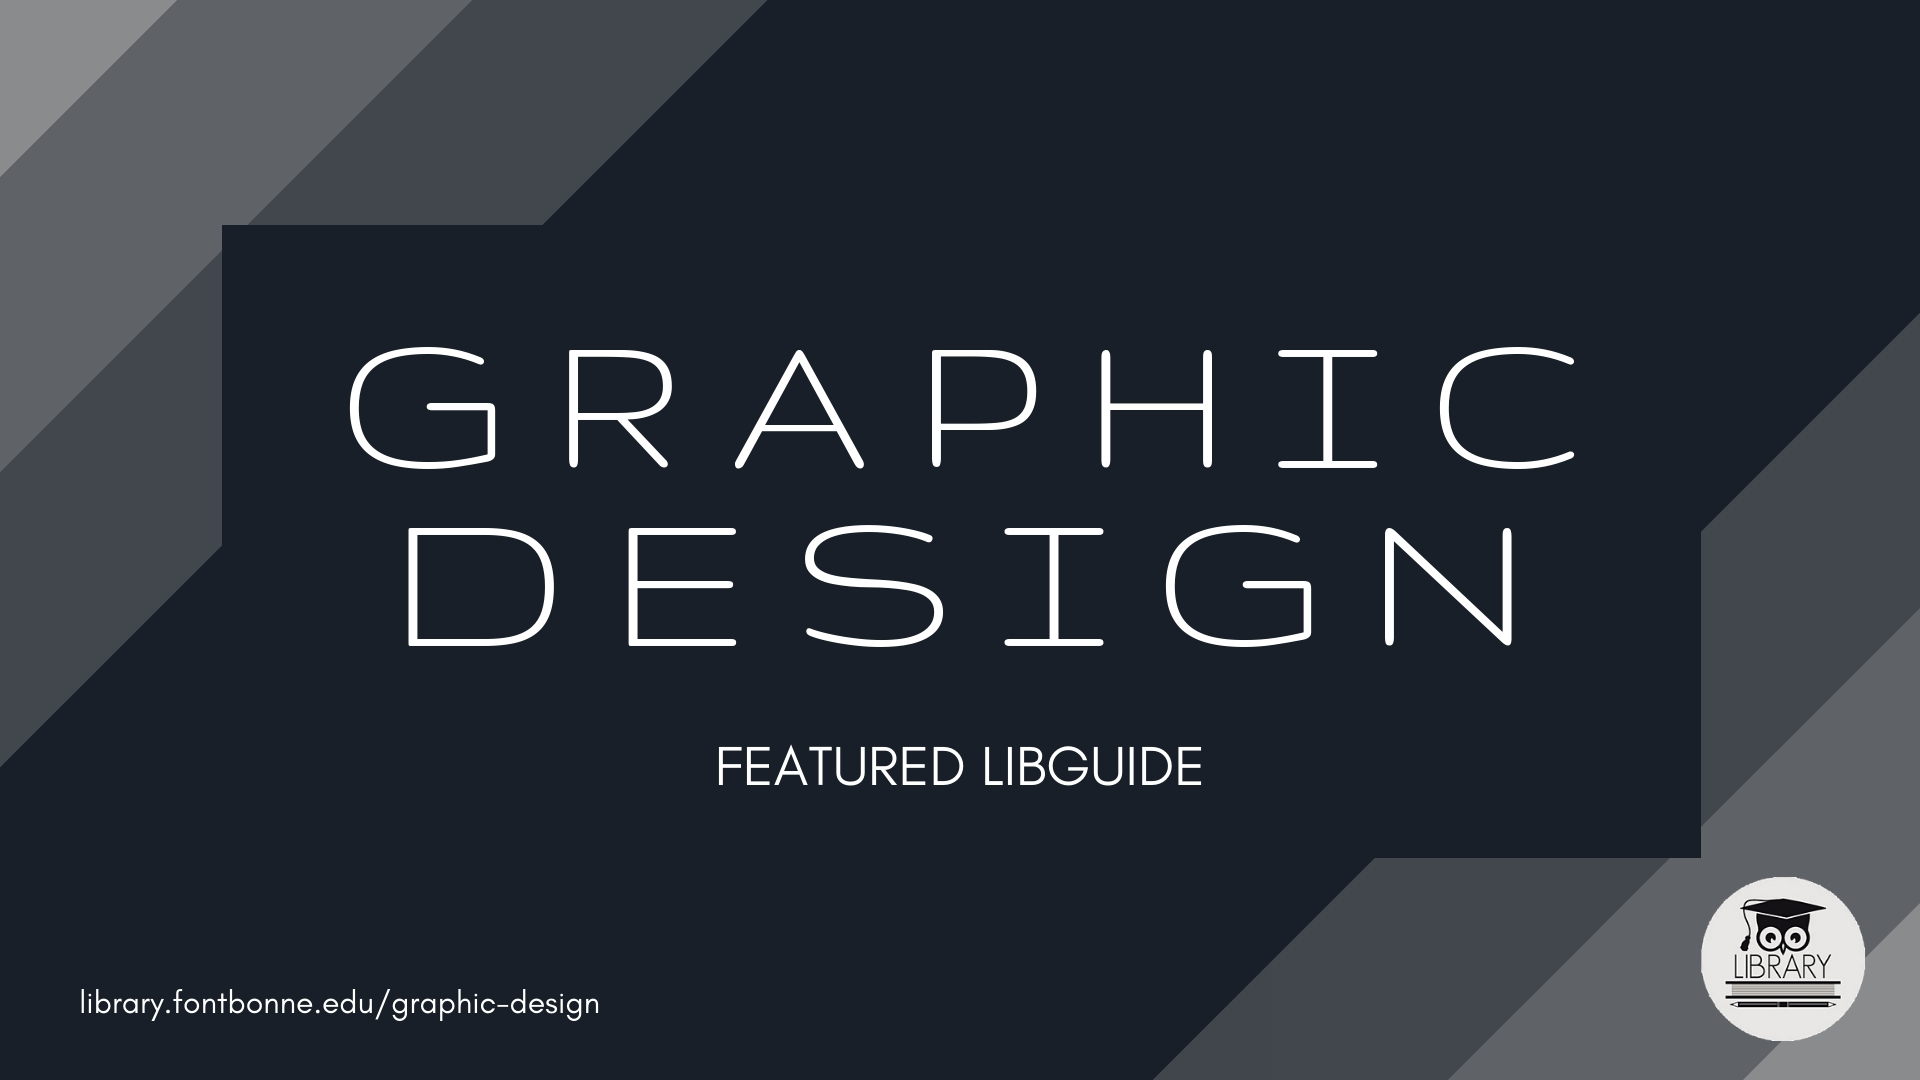 Learn more about graphic design with LibGuides